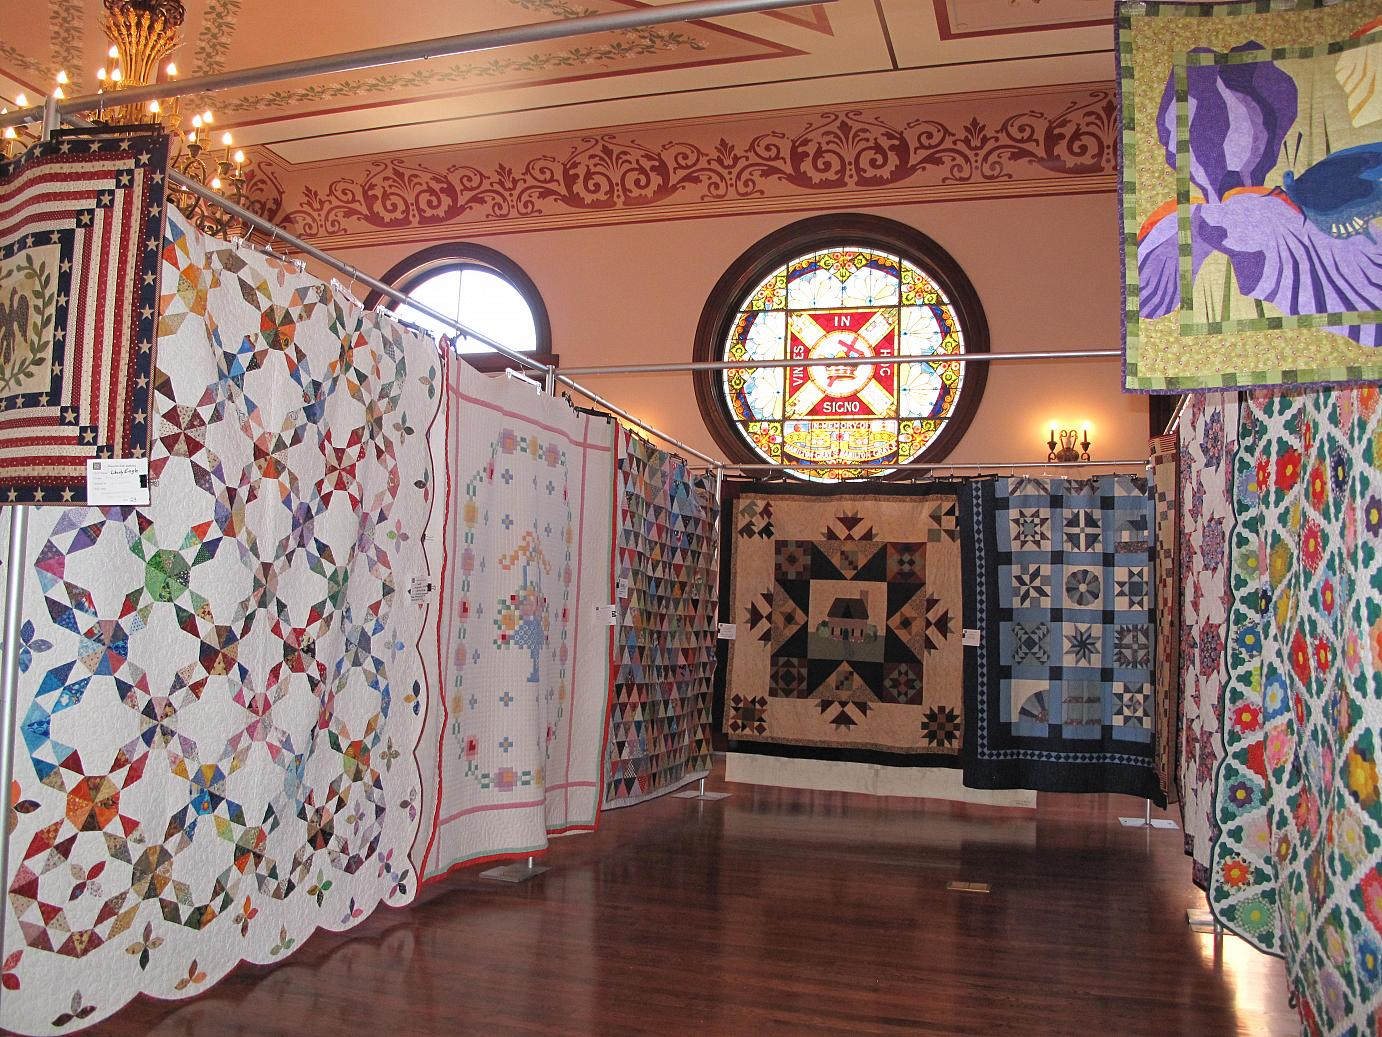 The Maysville Quilt Gathering Event at the Cox Building